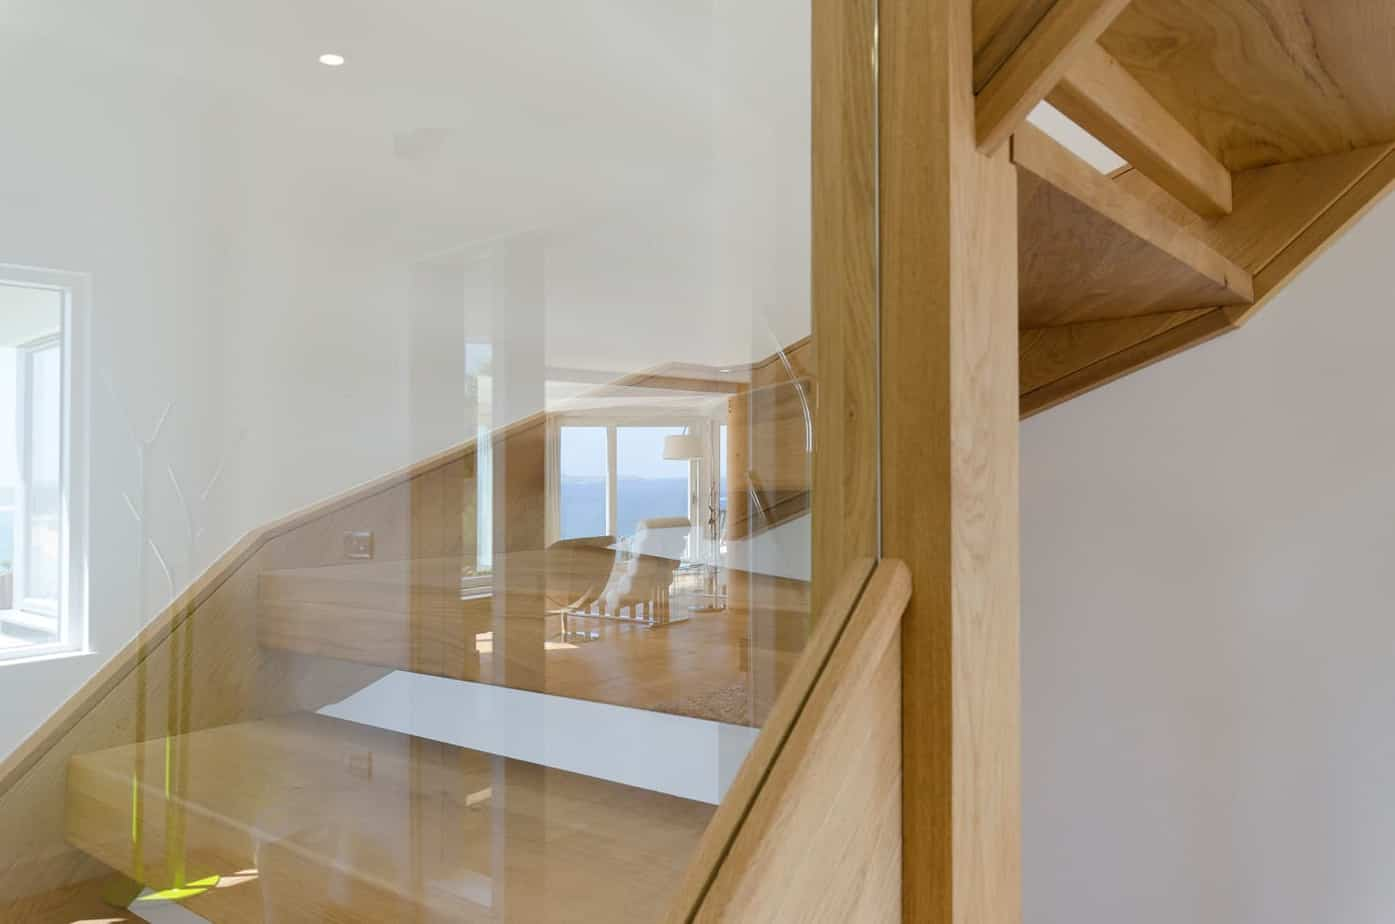 Glass banister and timber staircase